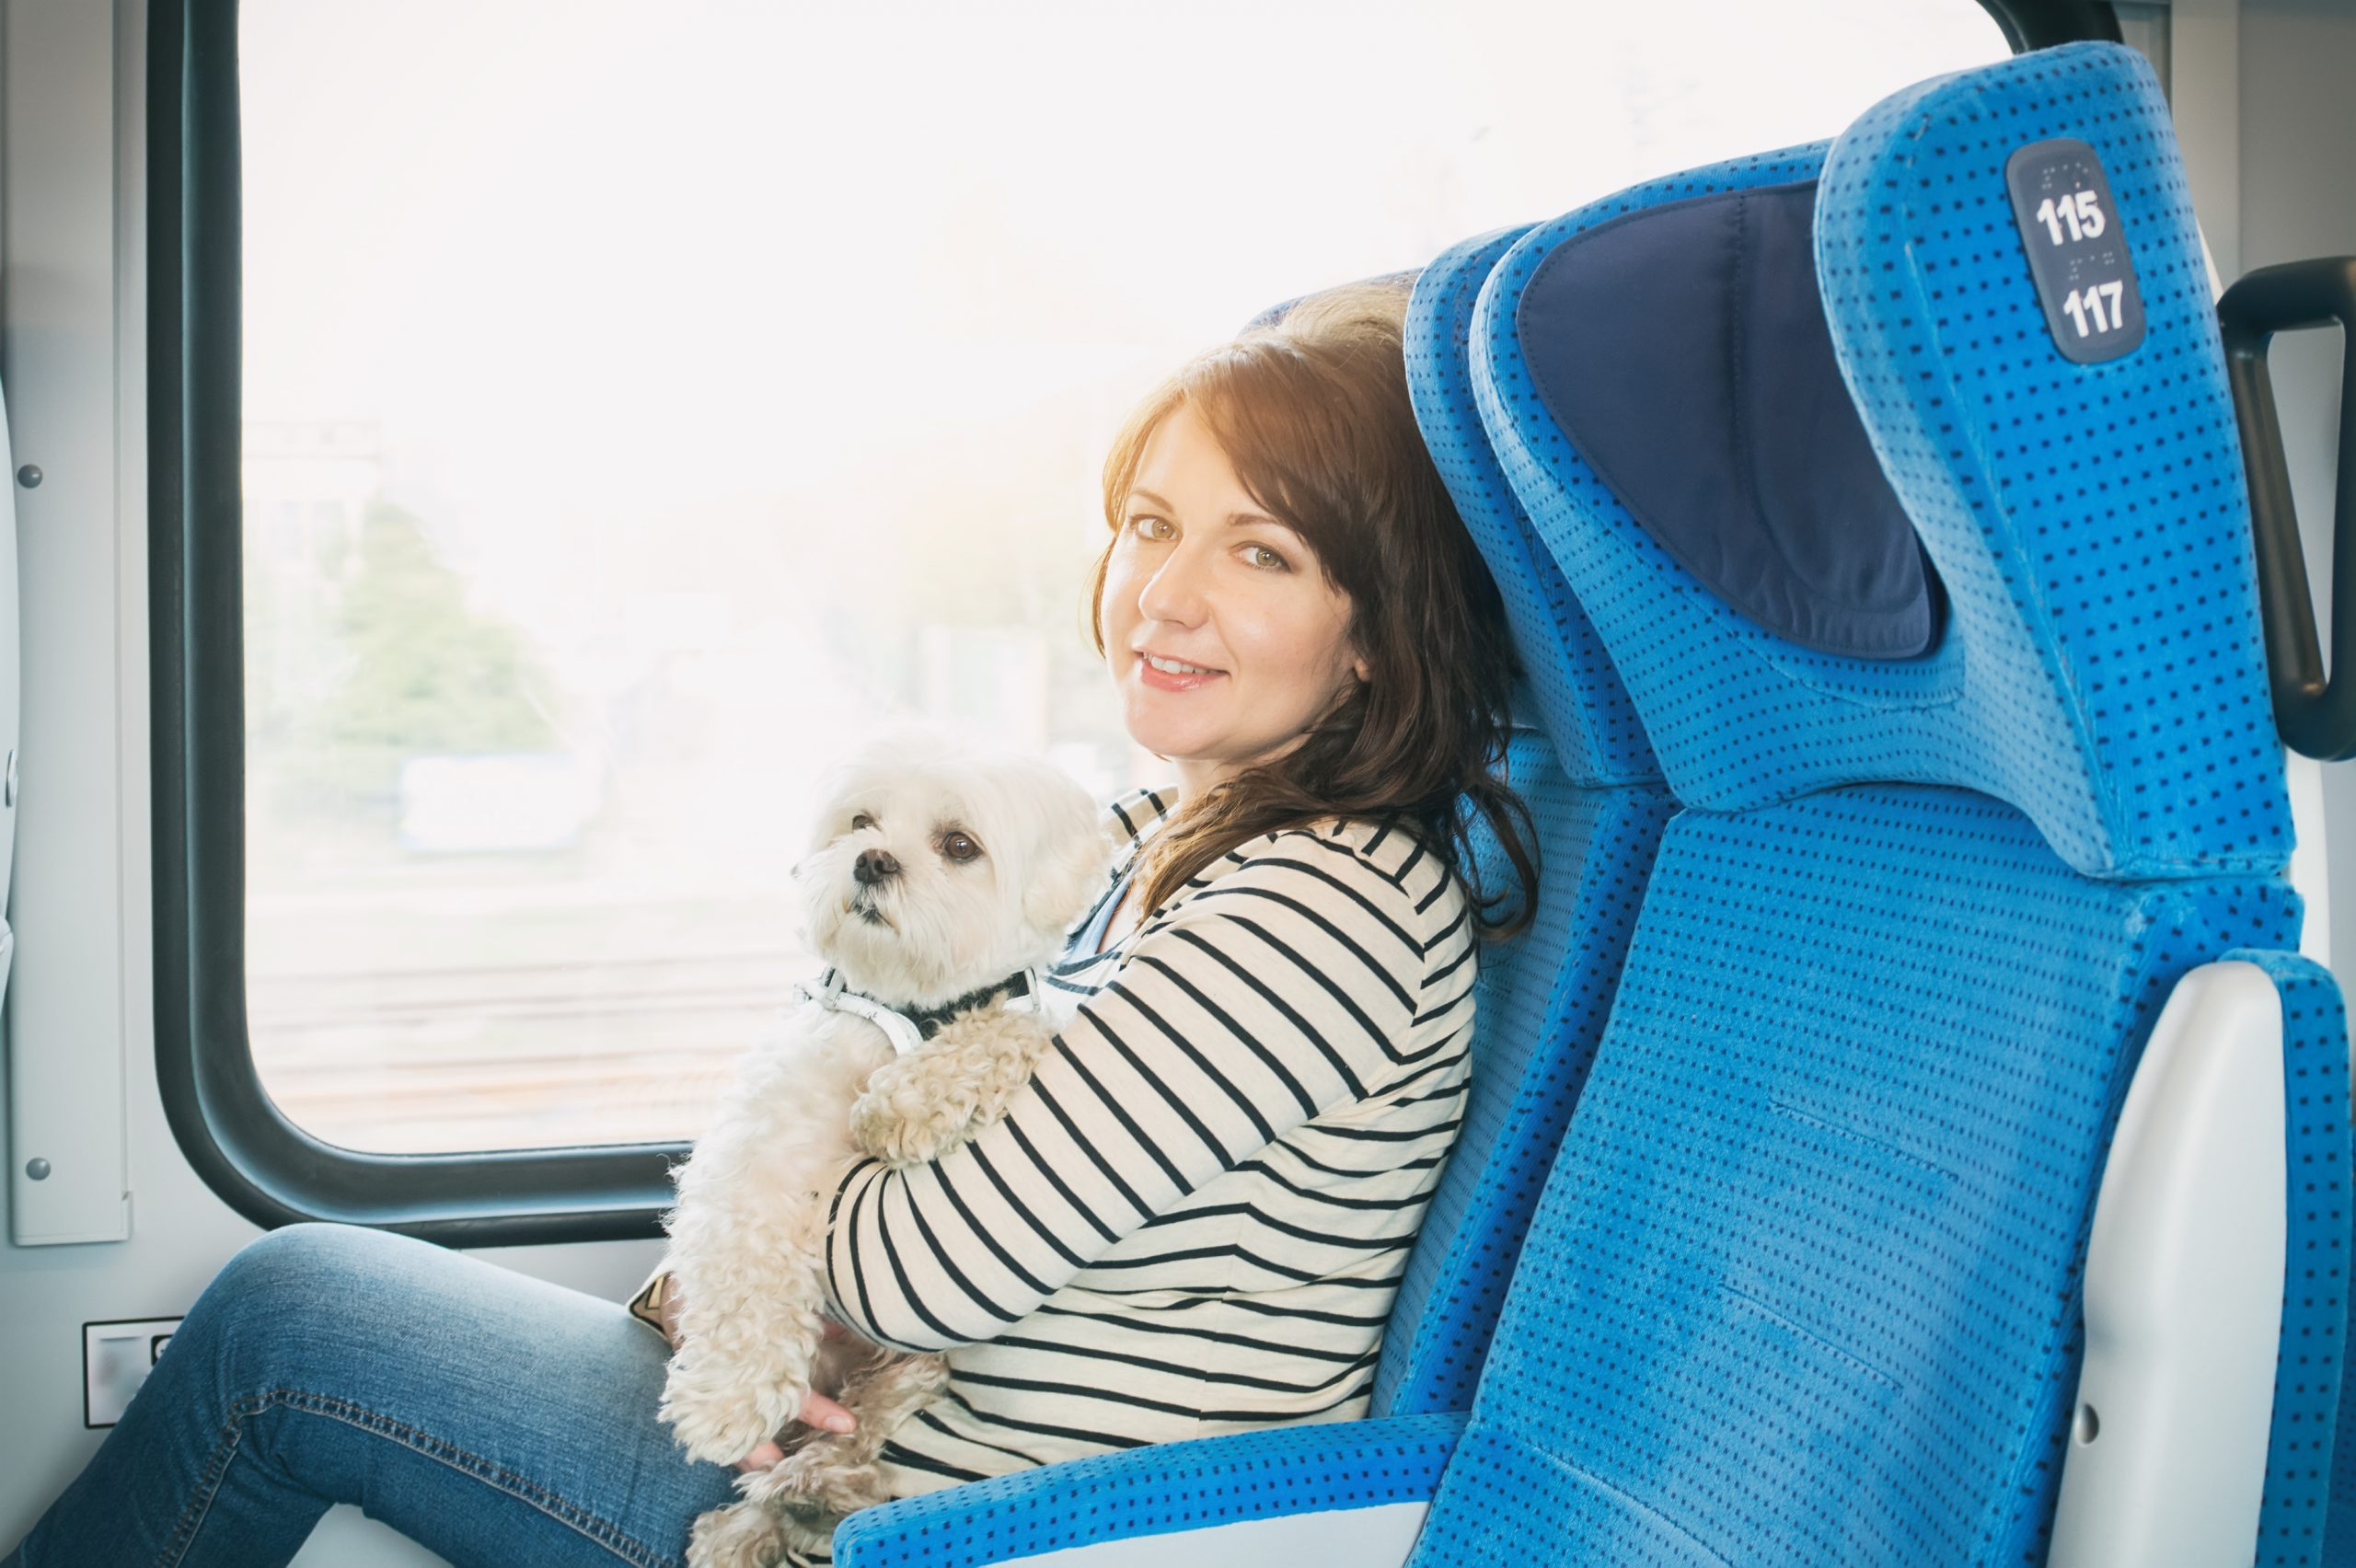 The natural health benefits of an emotional support animal